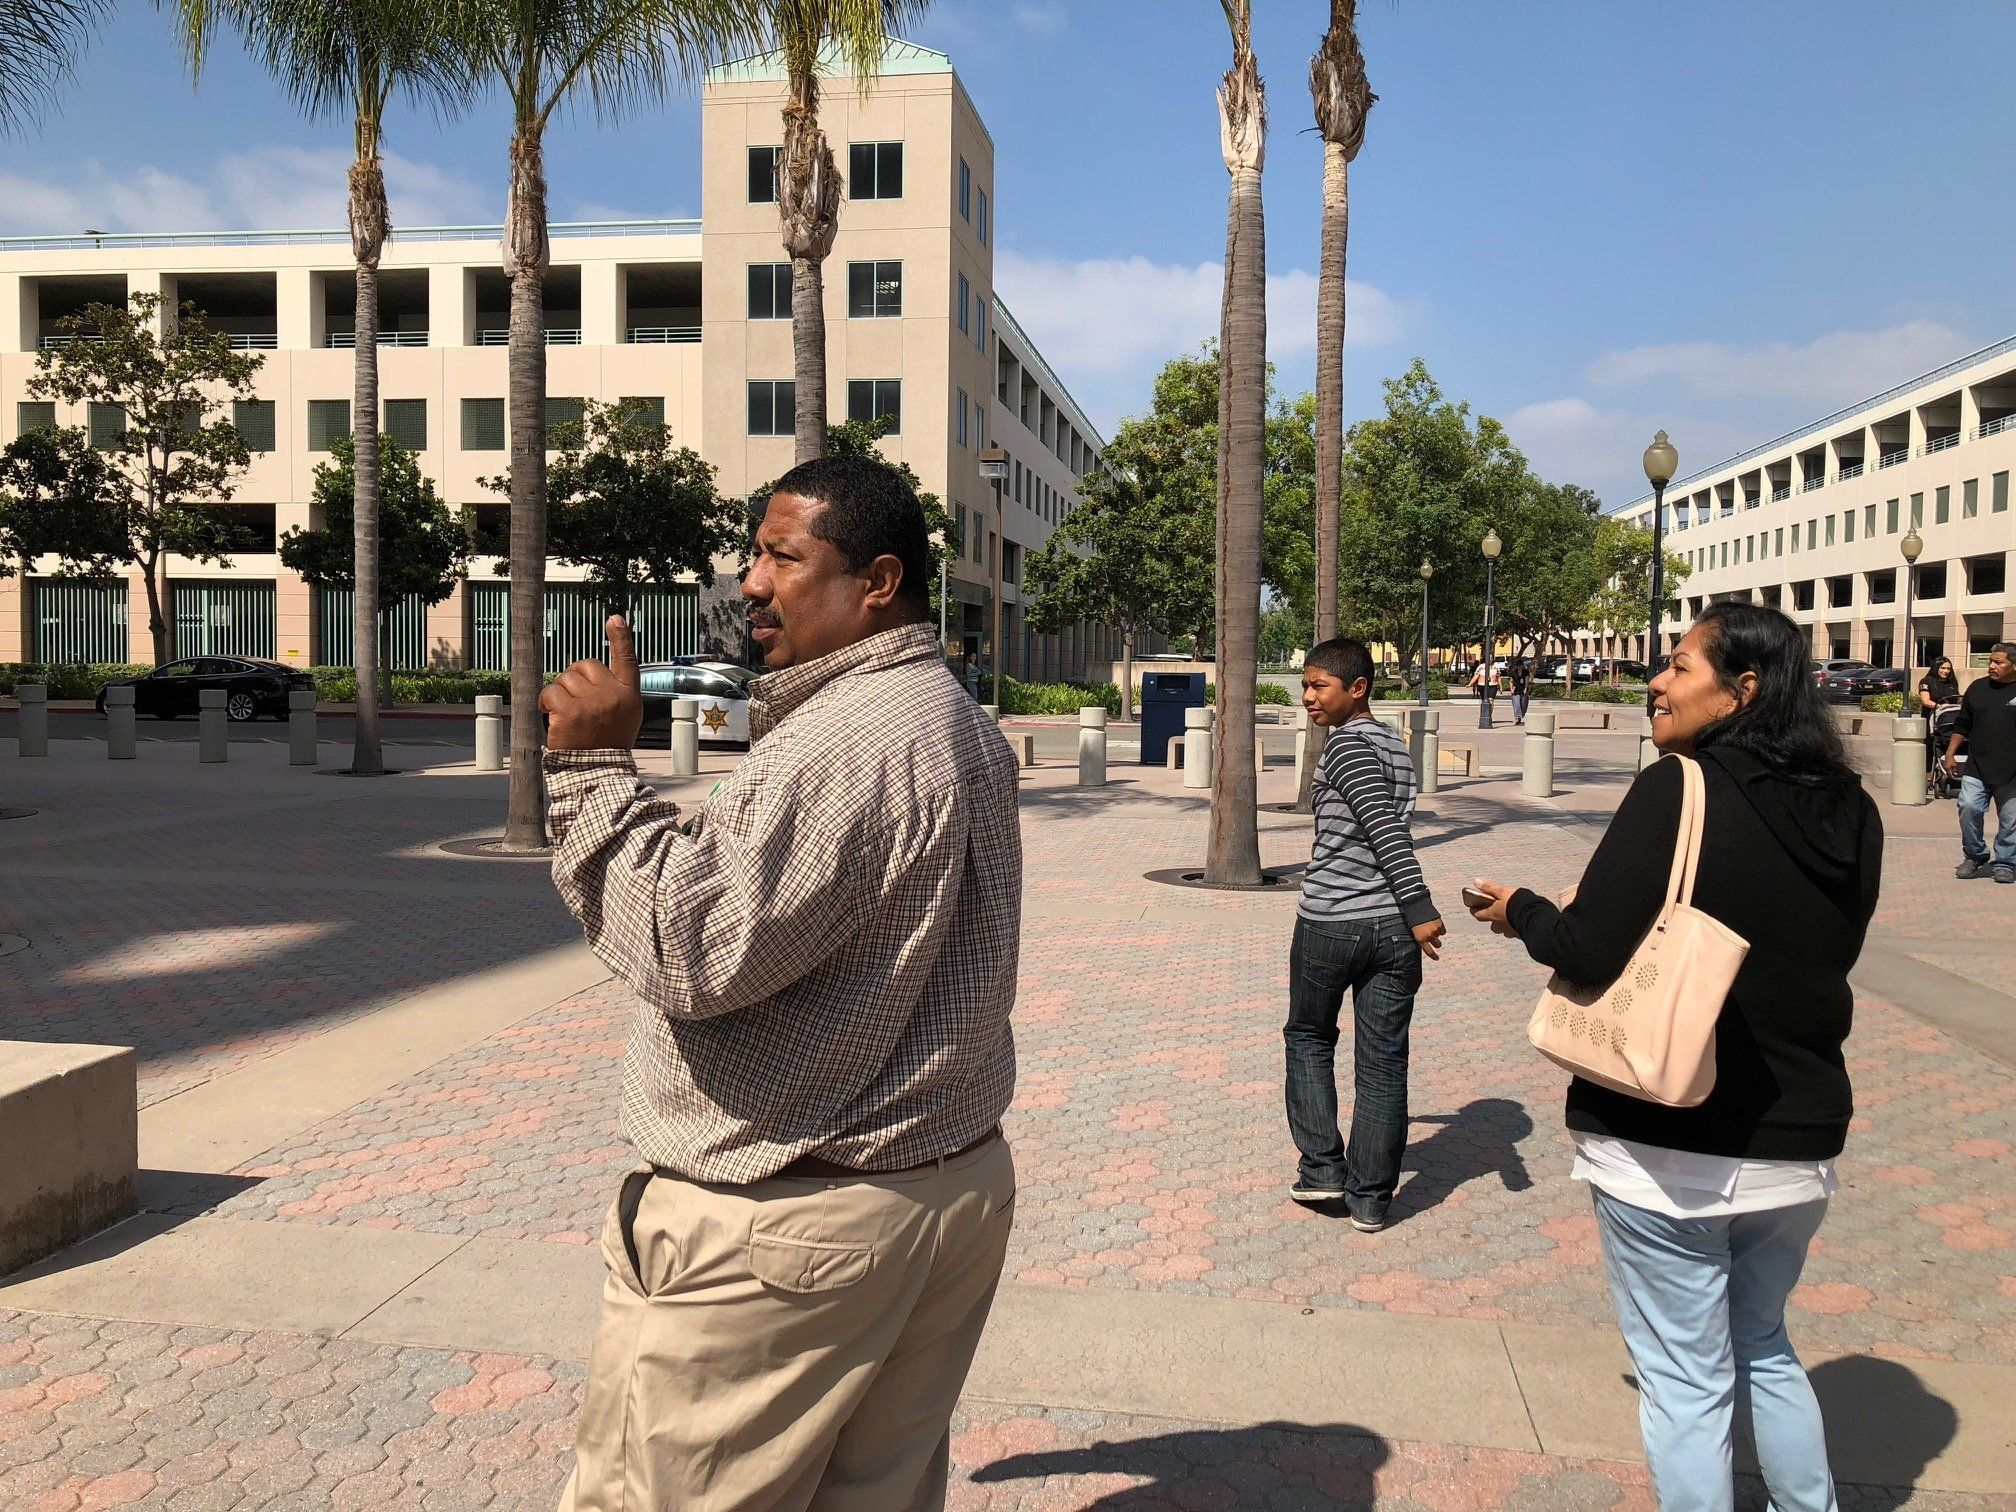 Cesar Gaspar Sr. (left), his wife, Kenia (right), and their son, Cesar (center), leave the Lamoreaux Justice Center in Orange